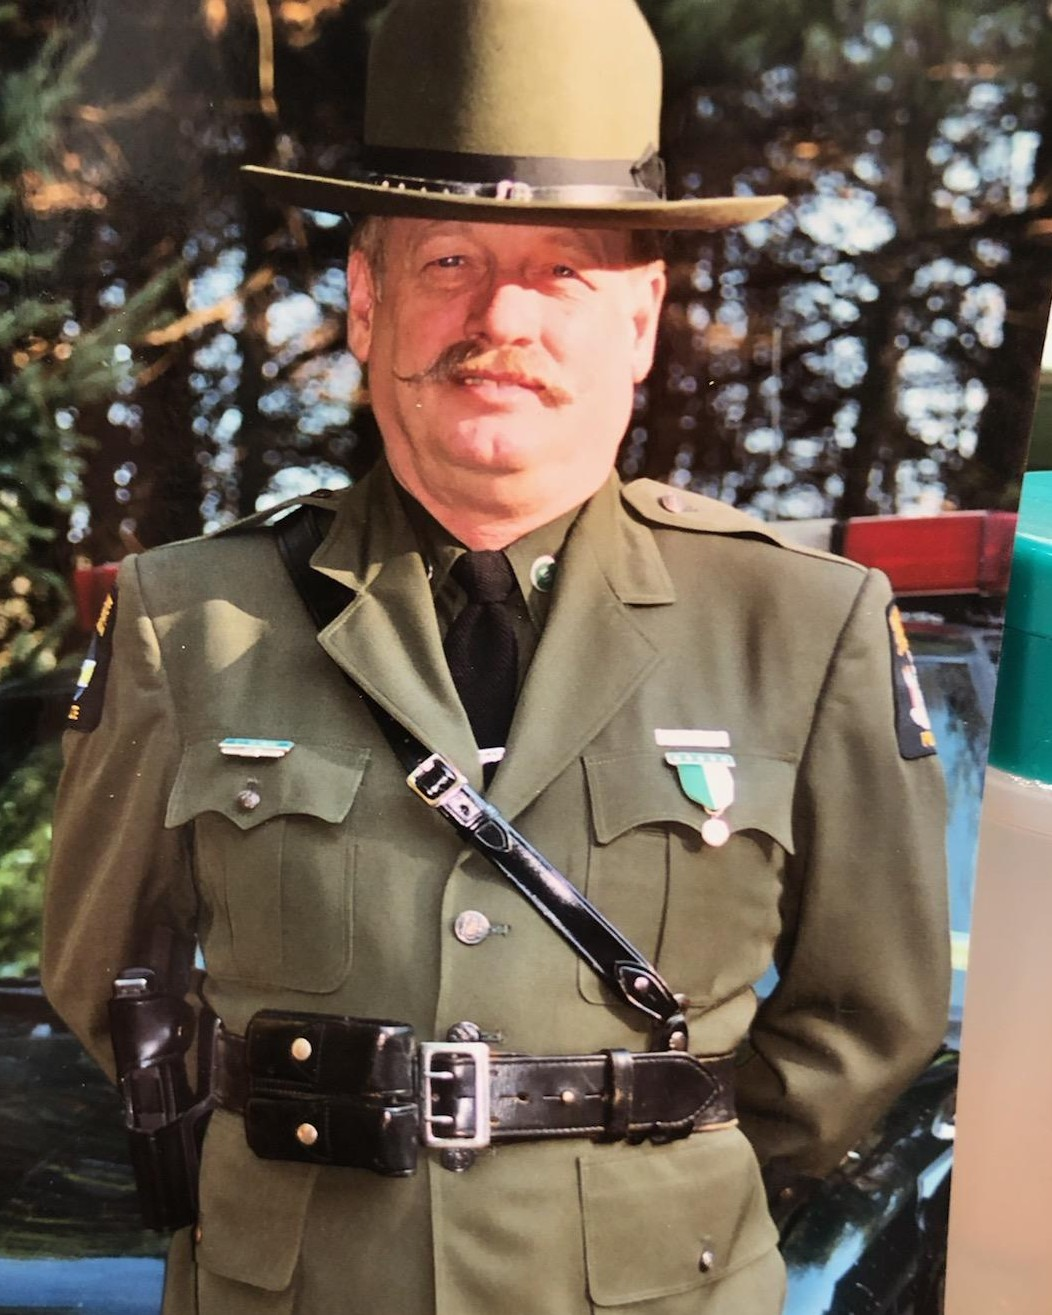 Conservation Officer Stephen L. Raymond | New York State Environmental Conservation Police, New York